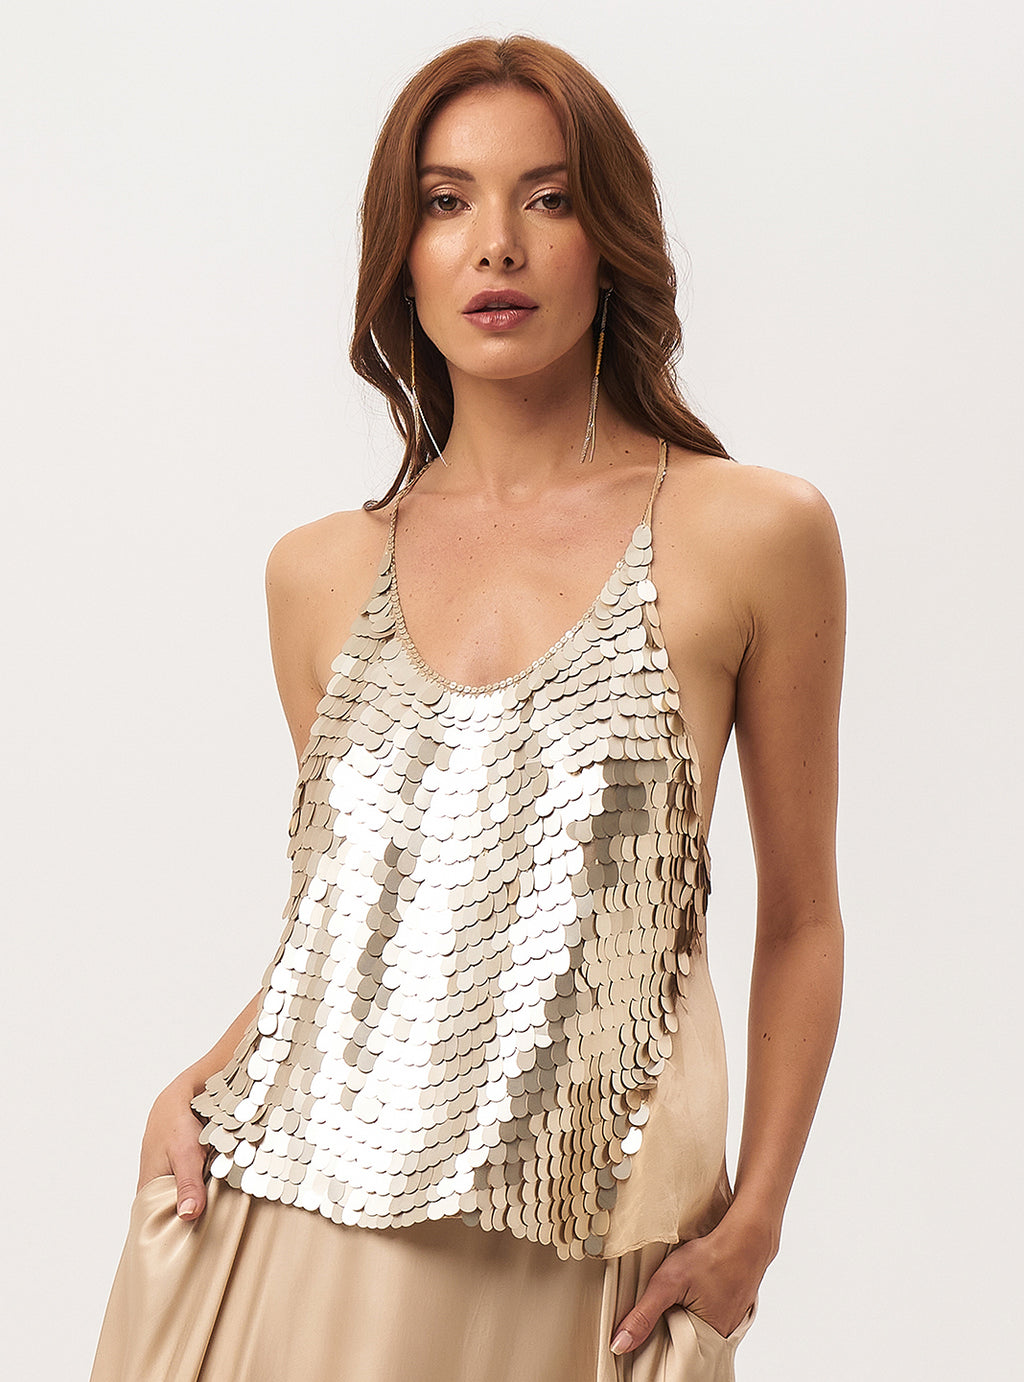 Dollar Beaded Racer Back Top - Lily Jean